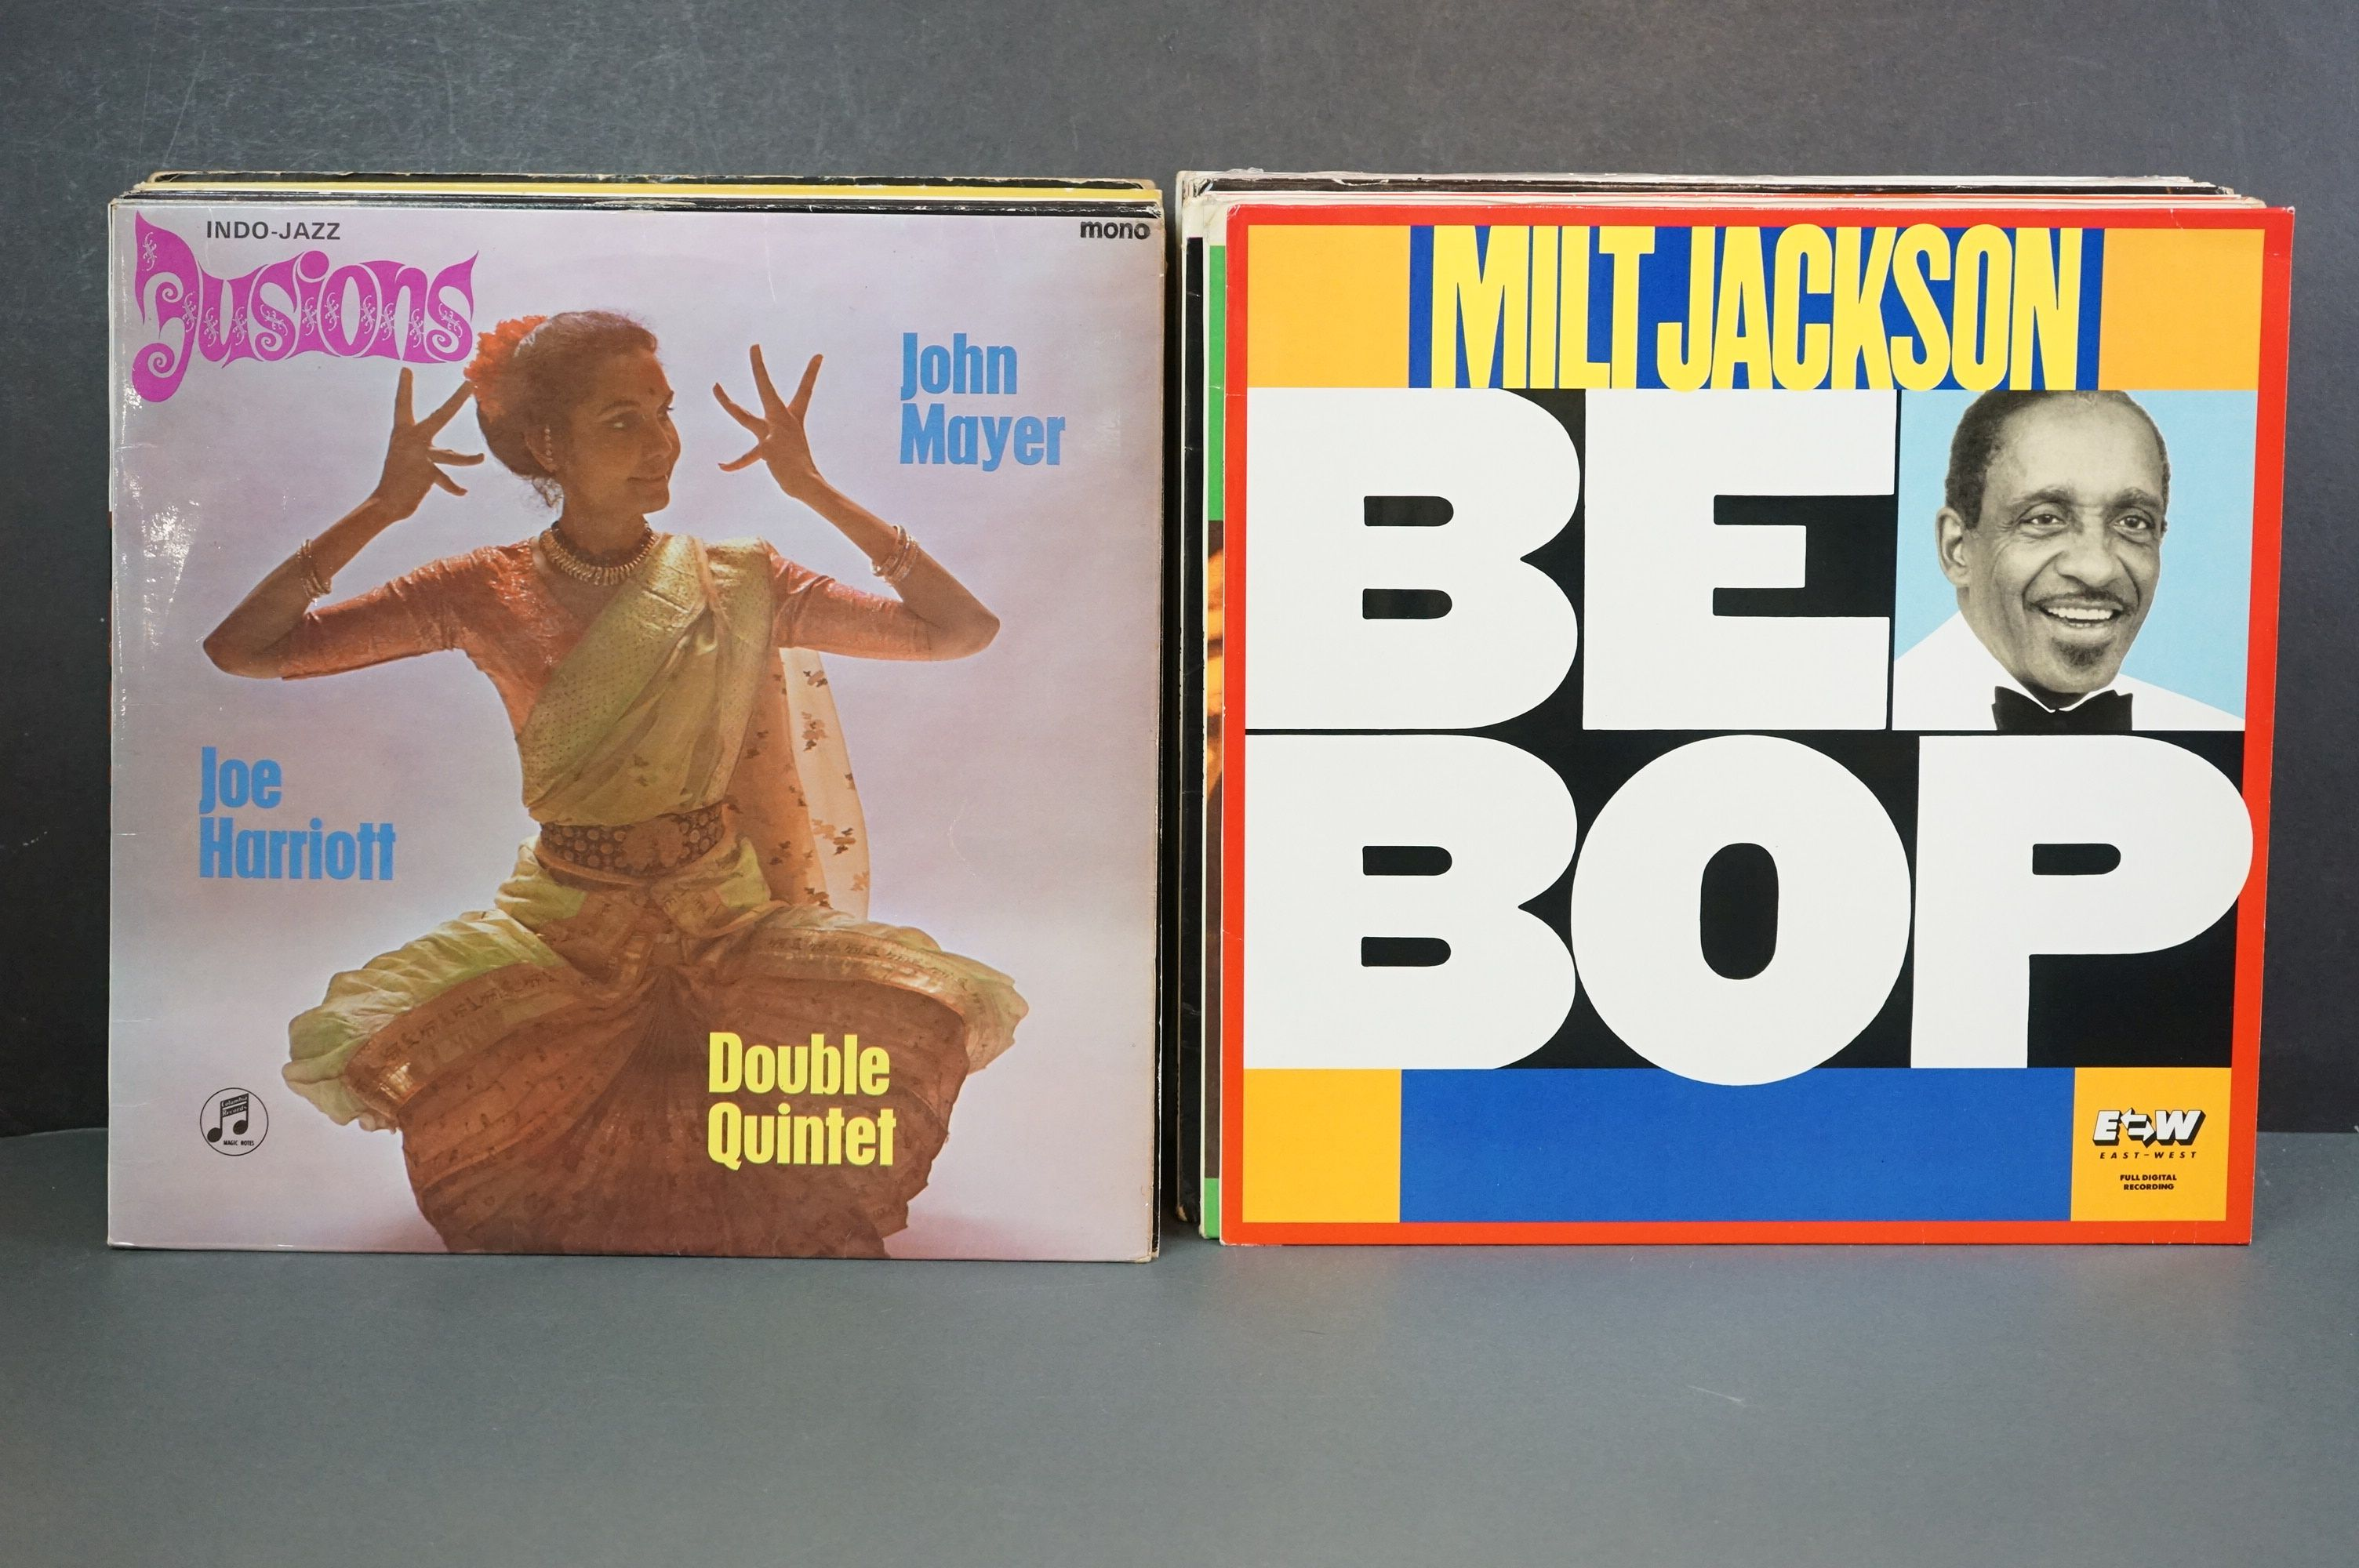 Vinyl - Around 30 Jazz LPs to include Woody Shaw, Ken Collyer, Billie Holiday, Milt Jackson, - Image 2 of 18